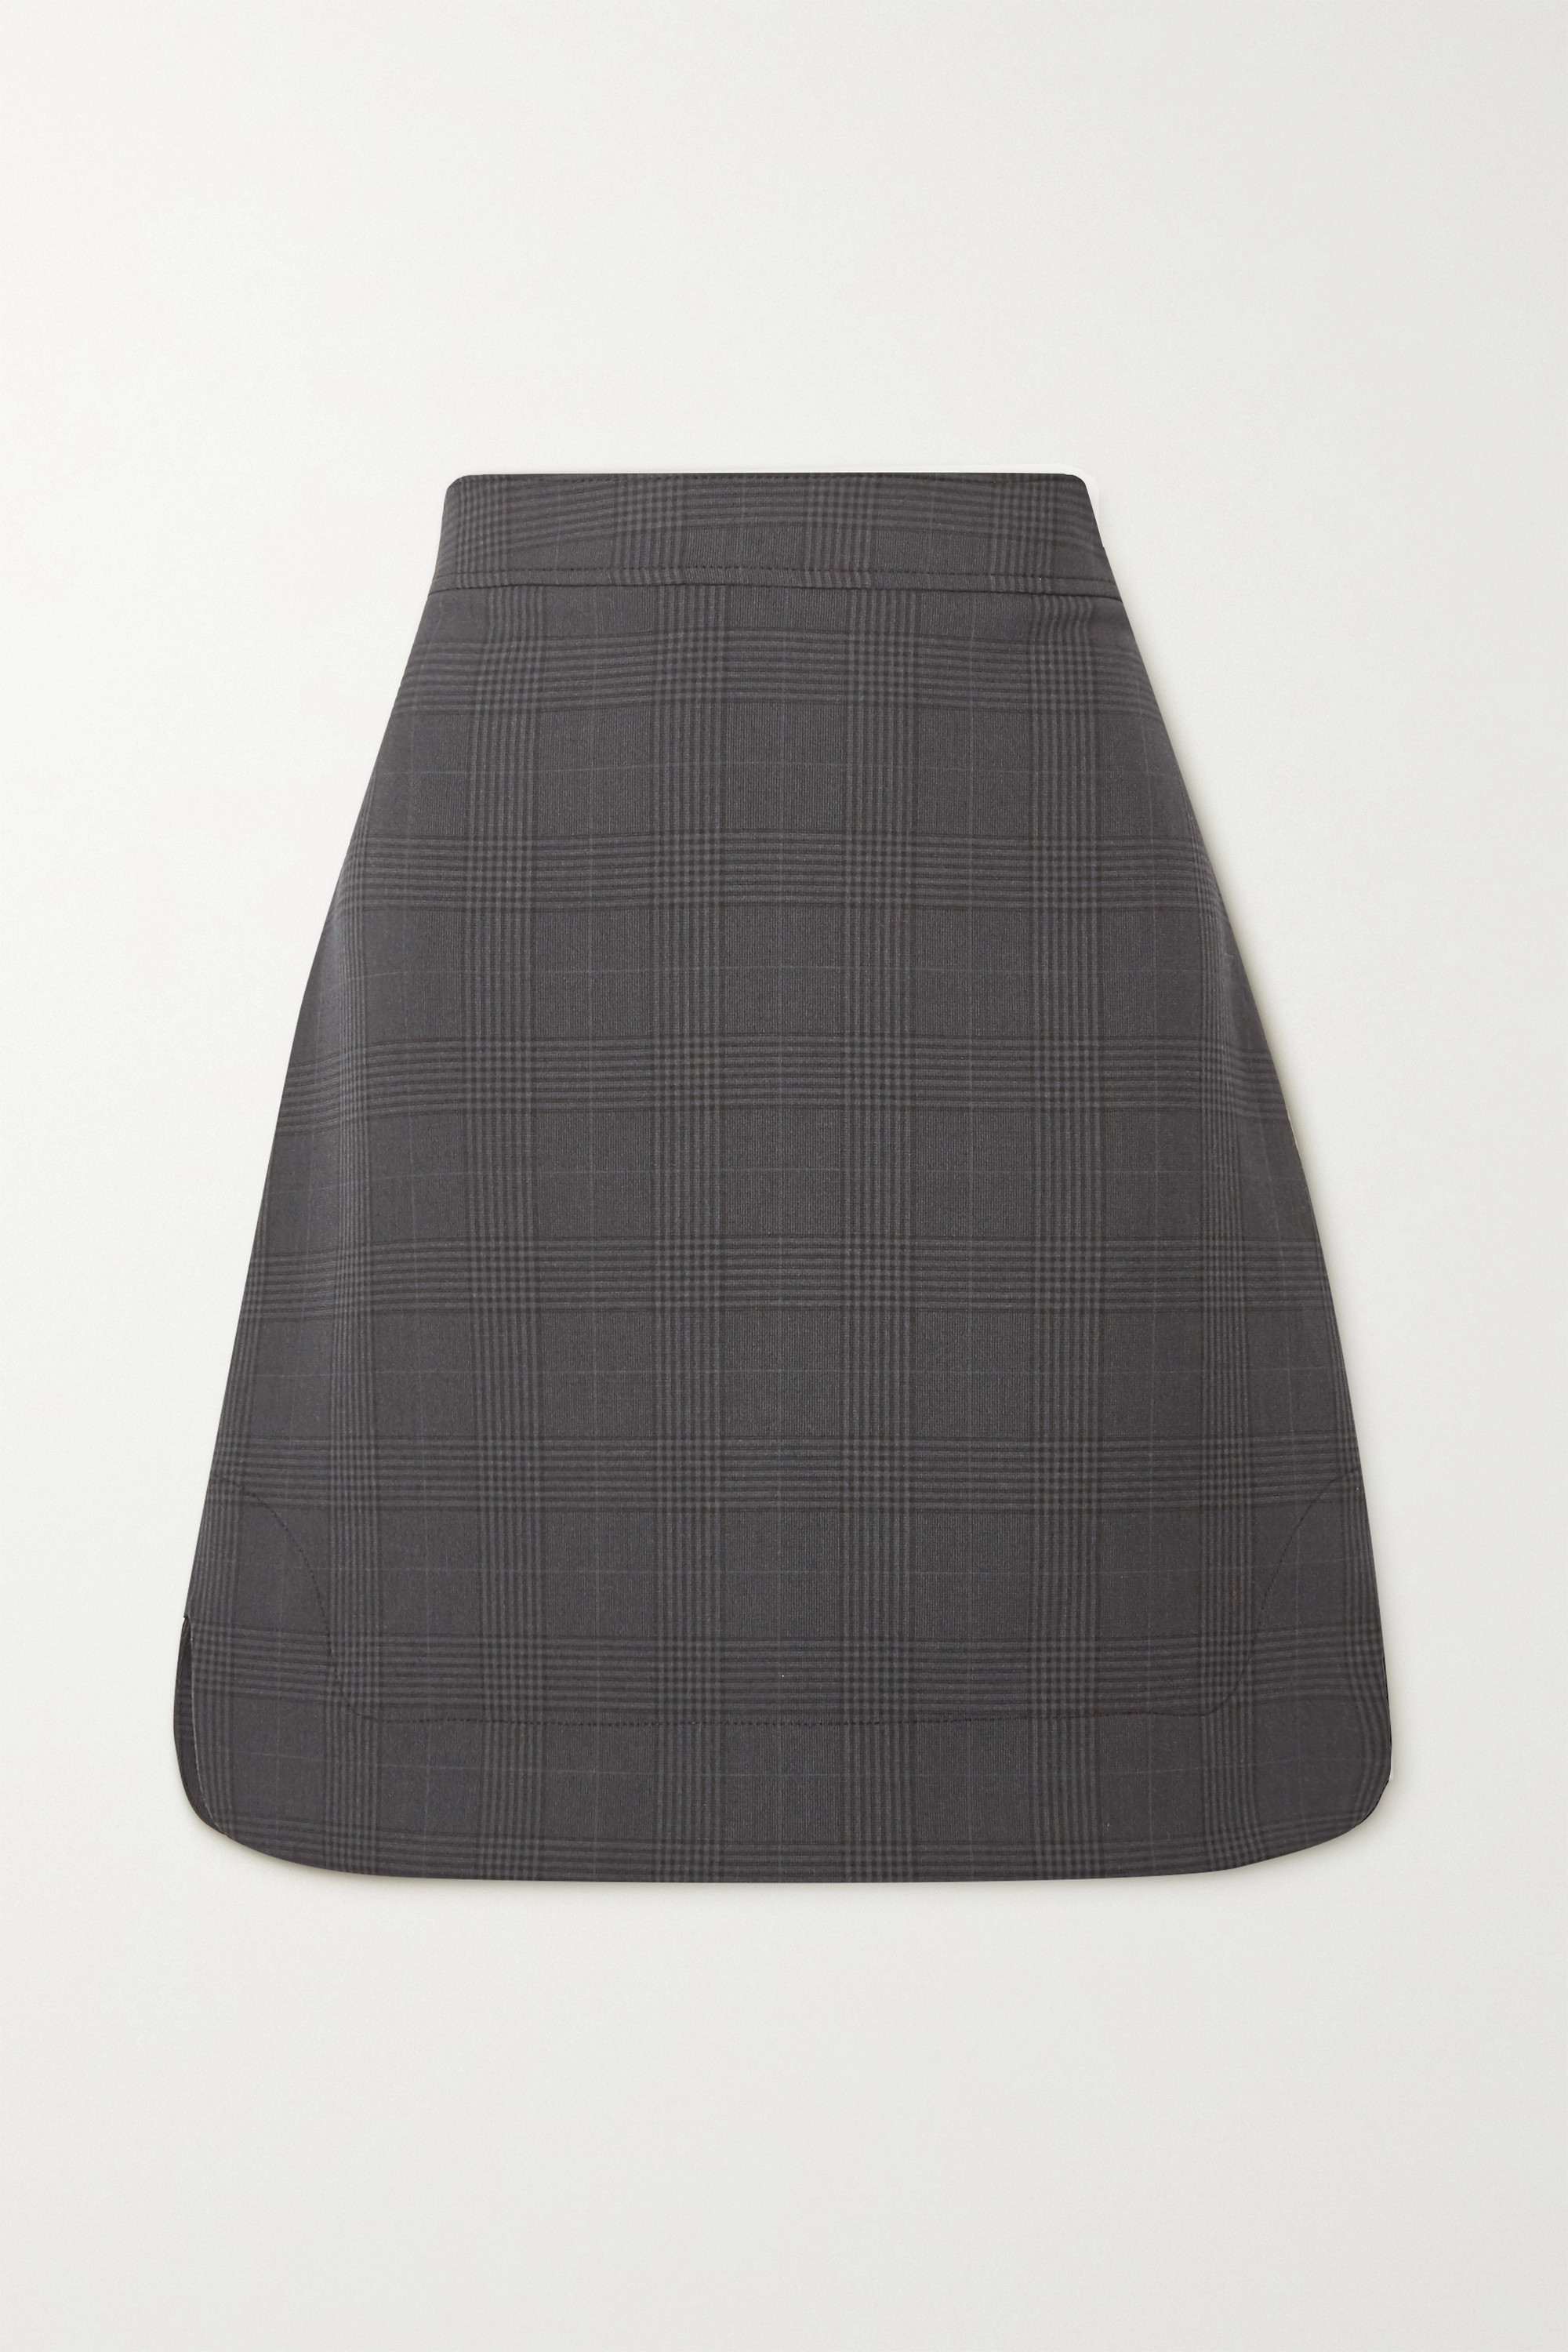 GANNI + NET SUSTAIN Princes of Wales checked woven mini skirt